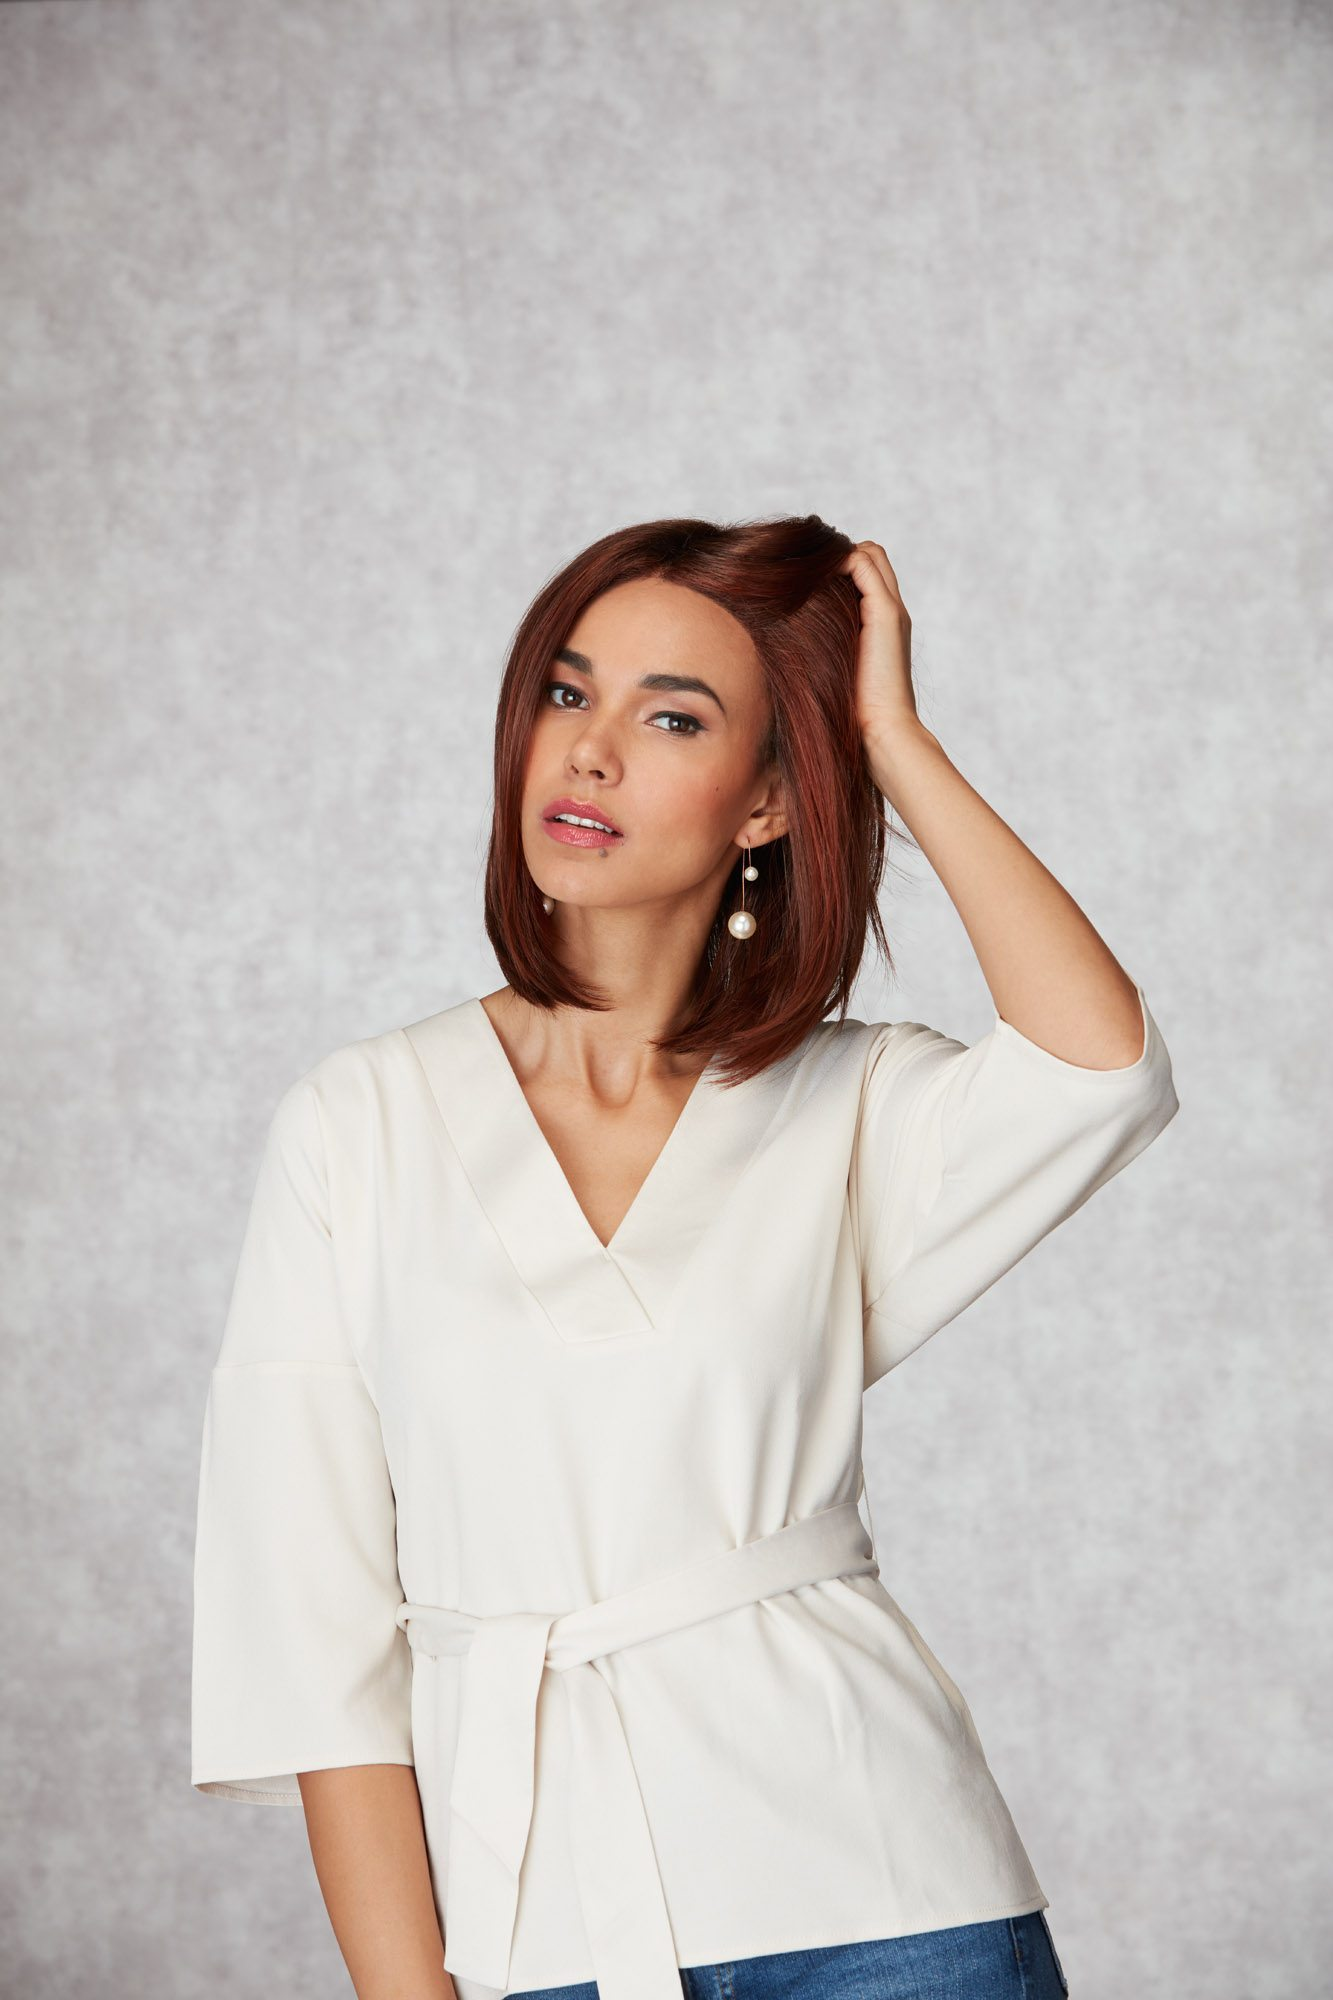 Reflect Wig Natural Image - image Tranquil_RCG4_141 on https://purewigs.com